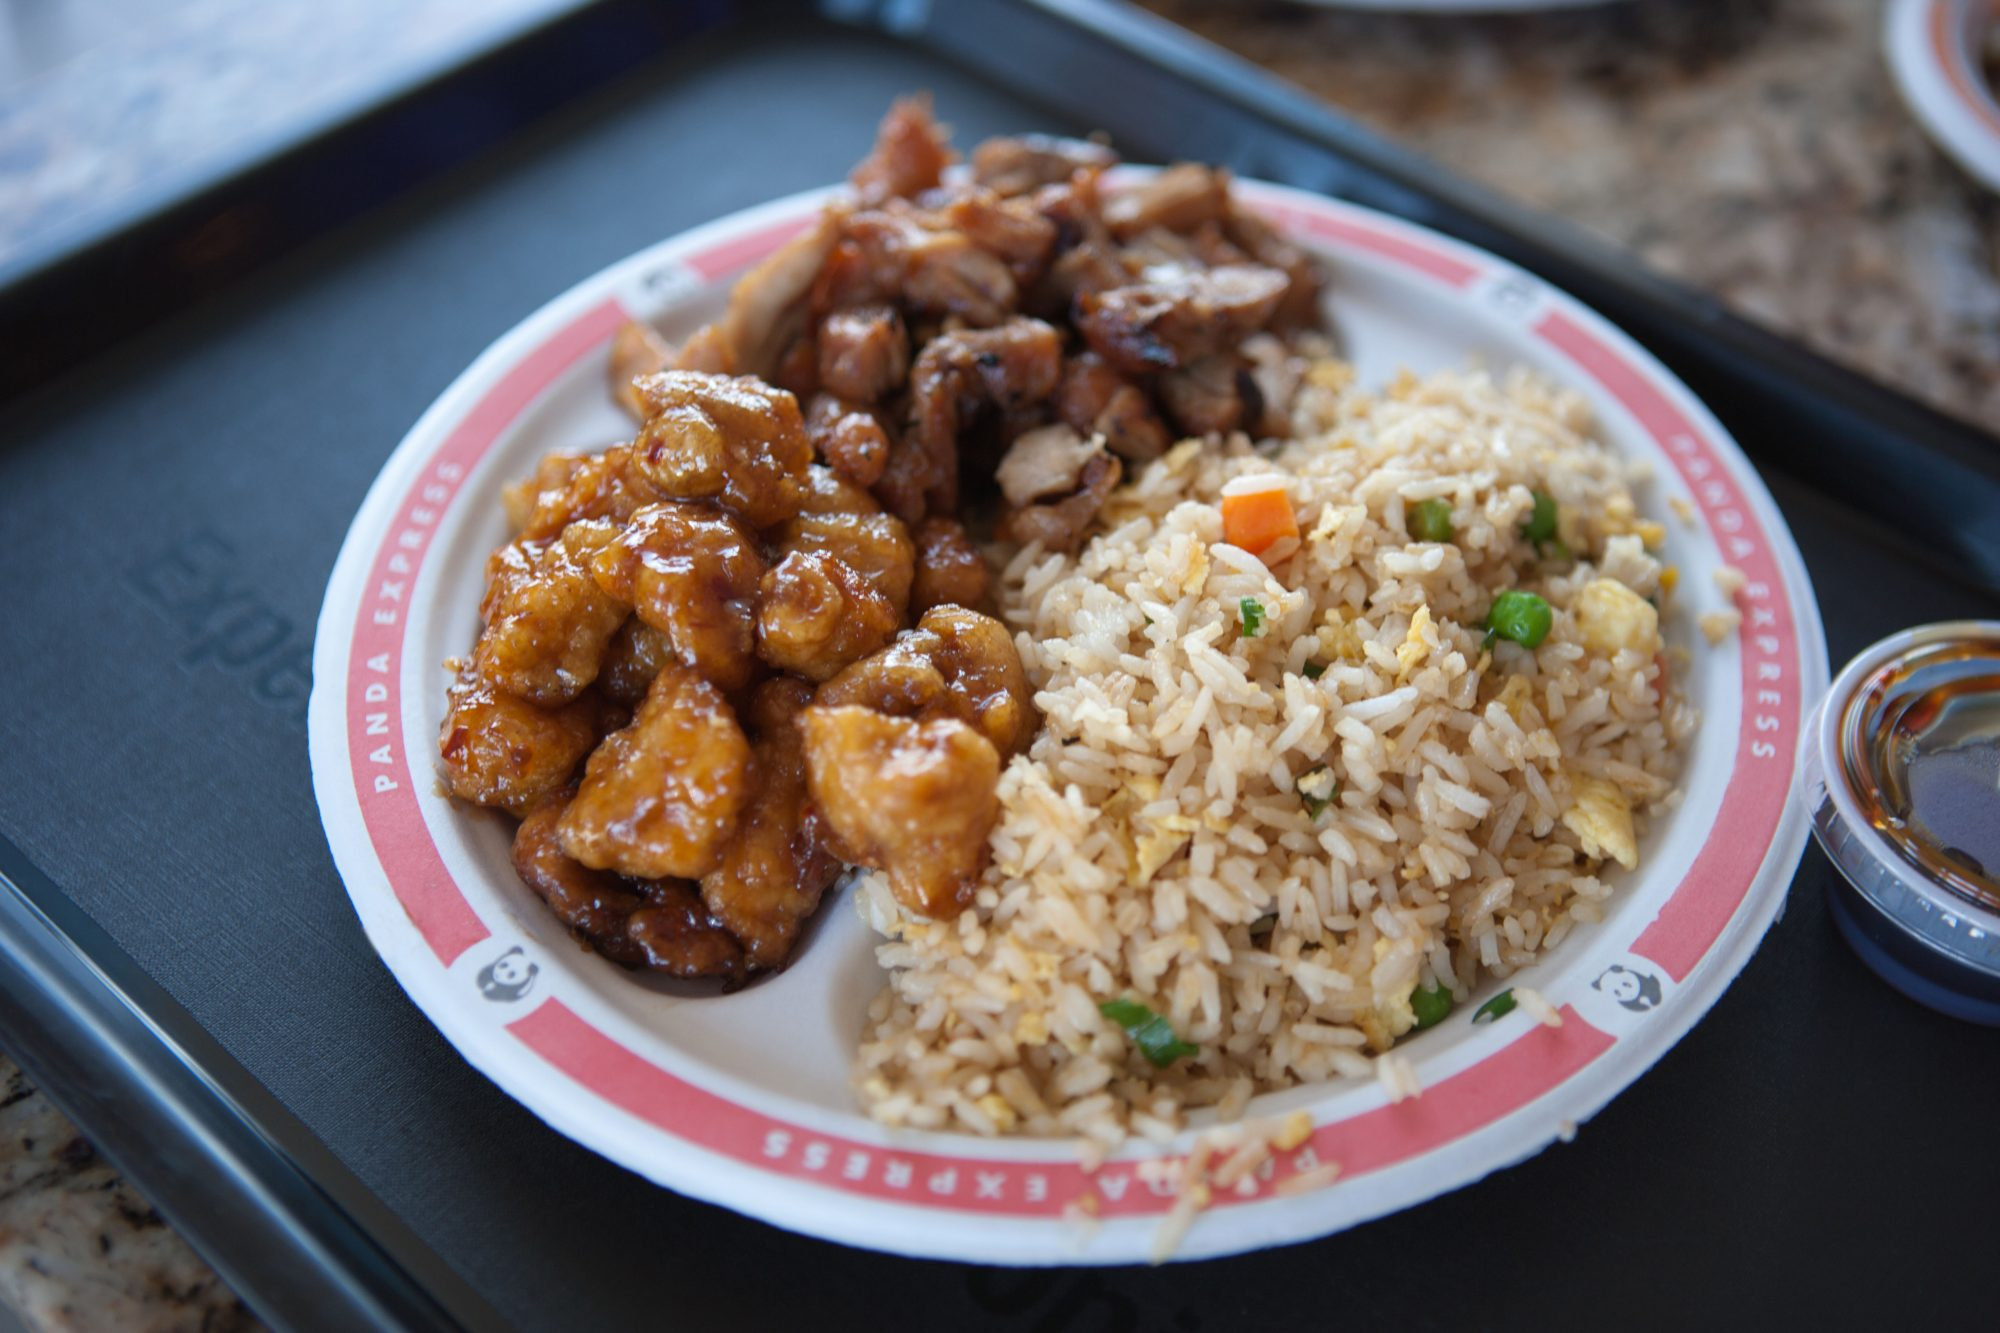 A plate of Chinese food served at the American fast food chain, Panda Express.